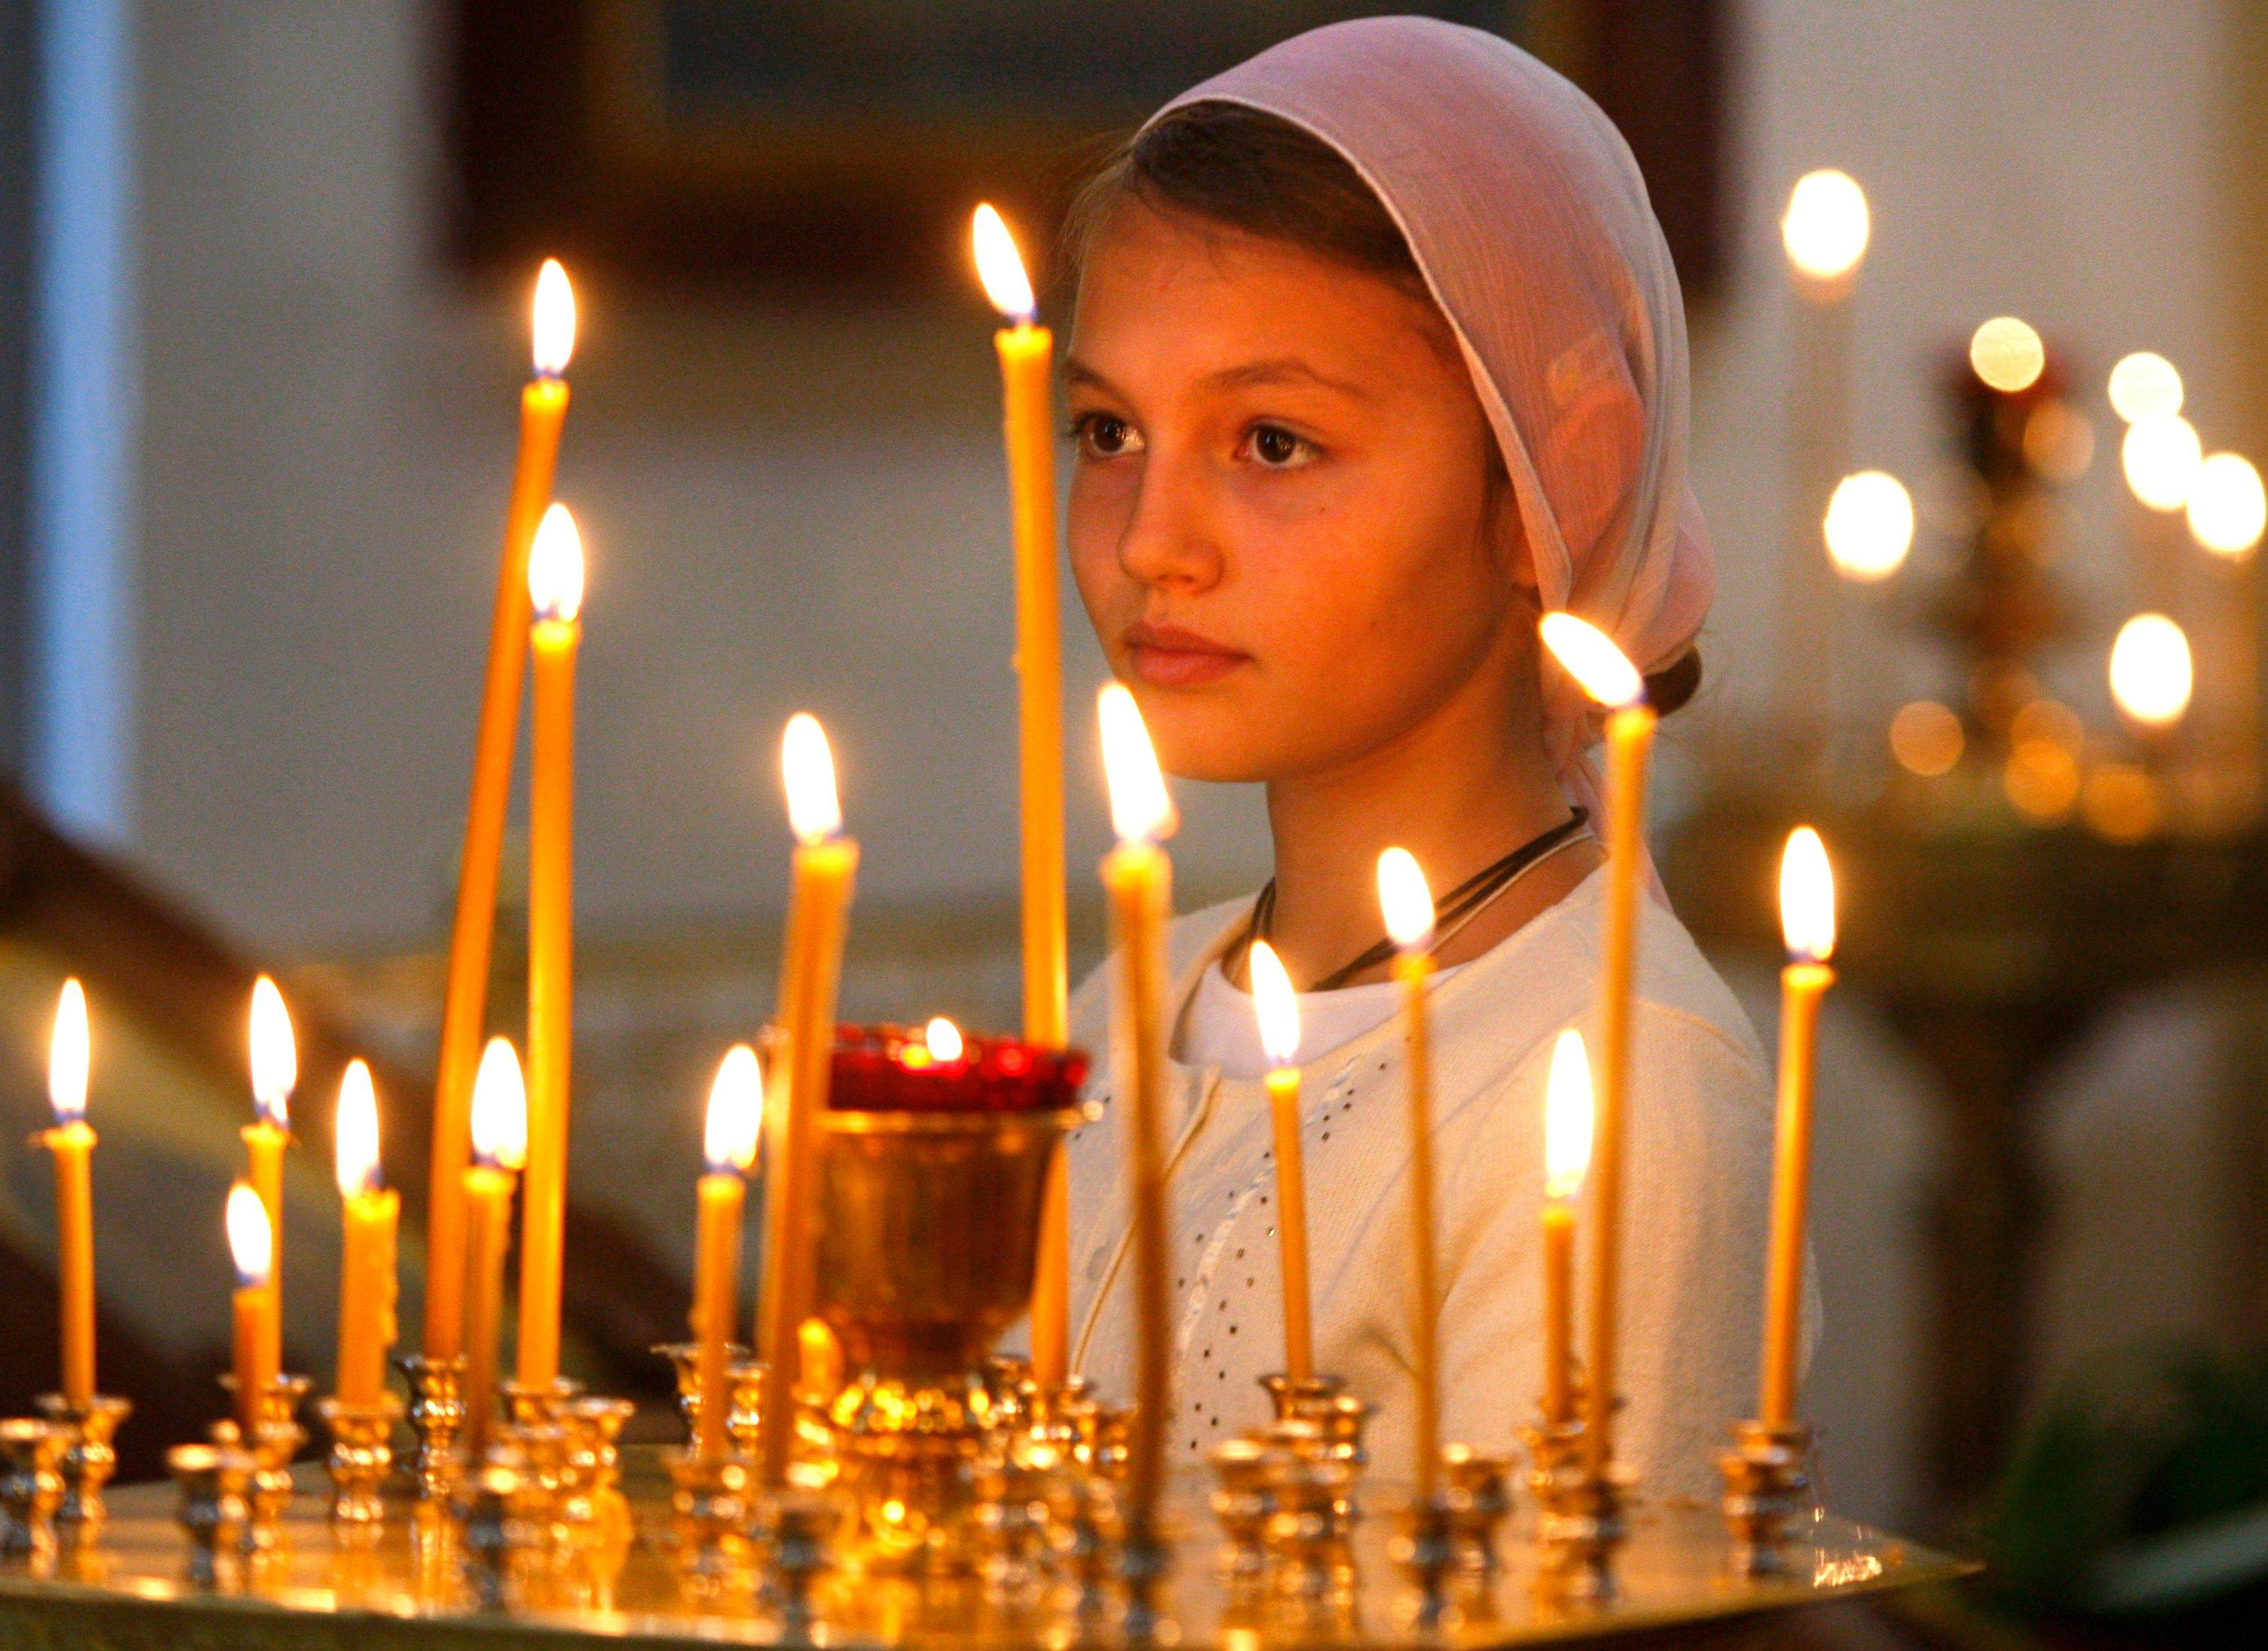 A girl attends an Orthodox service at St. Catherine in remembrance of the victims of the Sept. 11, 2001 terror attacks, Moscow, Sunday, Sept. 11, 2011. Sunday marks the tenth anniversary of the attacks of September 11, 2001.